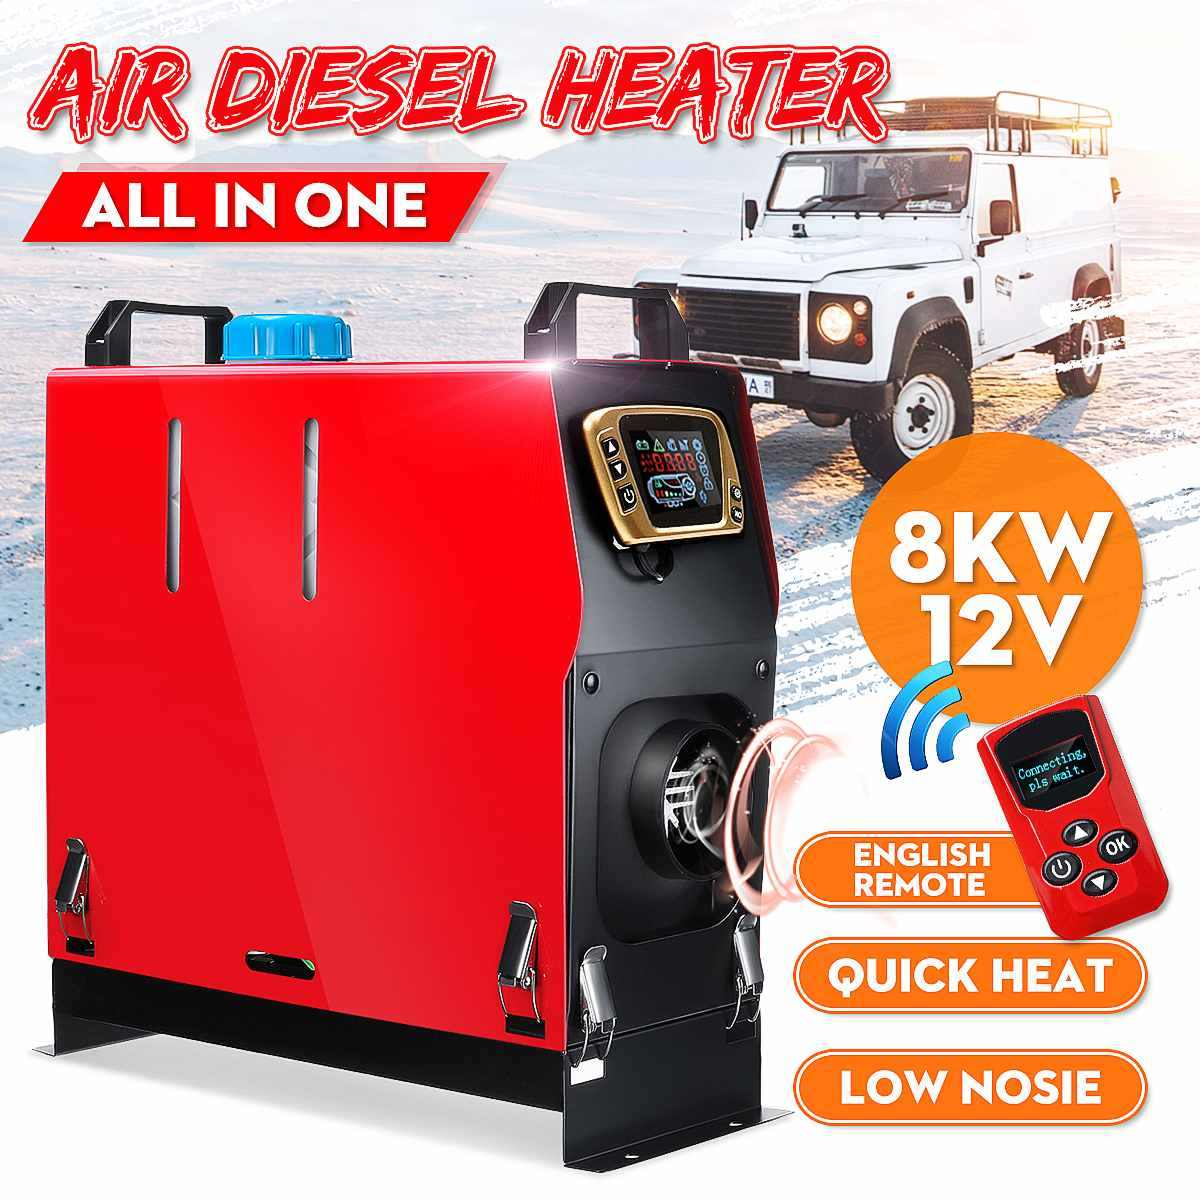 All in 1 12V 2KW-5KW Diesel Air Parking Heater with 1 Hole LCD Display for Truck Bus Car Van Boat